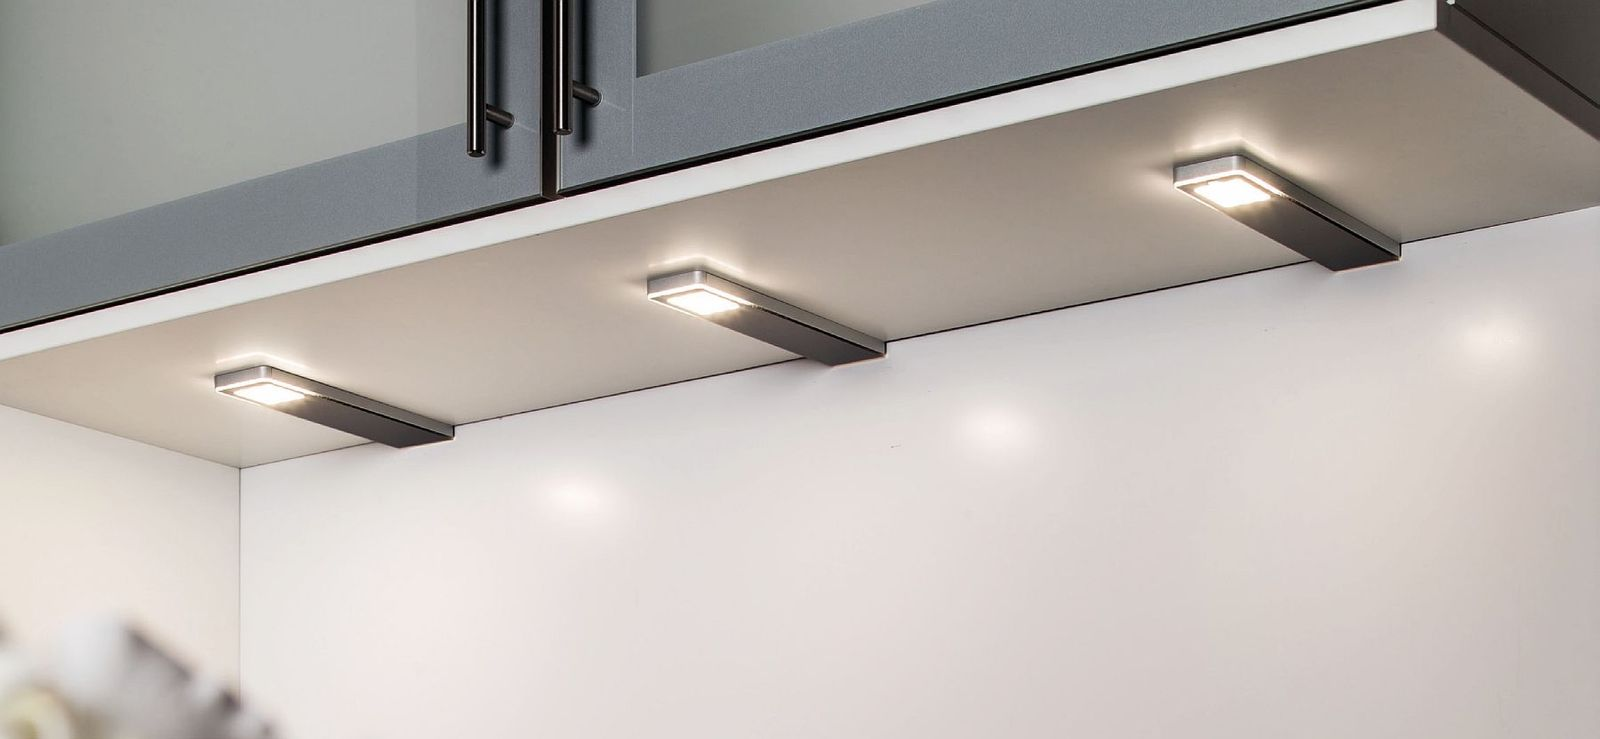 2 er set unterbauleuchte k che 2 x 5 w alu konverter sensor dimmer 555093 lp kaufen bei. Black Bedroom Furniture Sets. Home Design Ideas